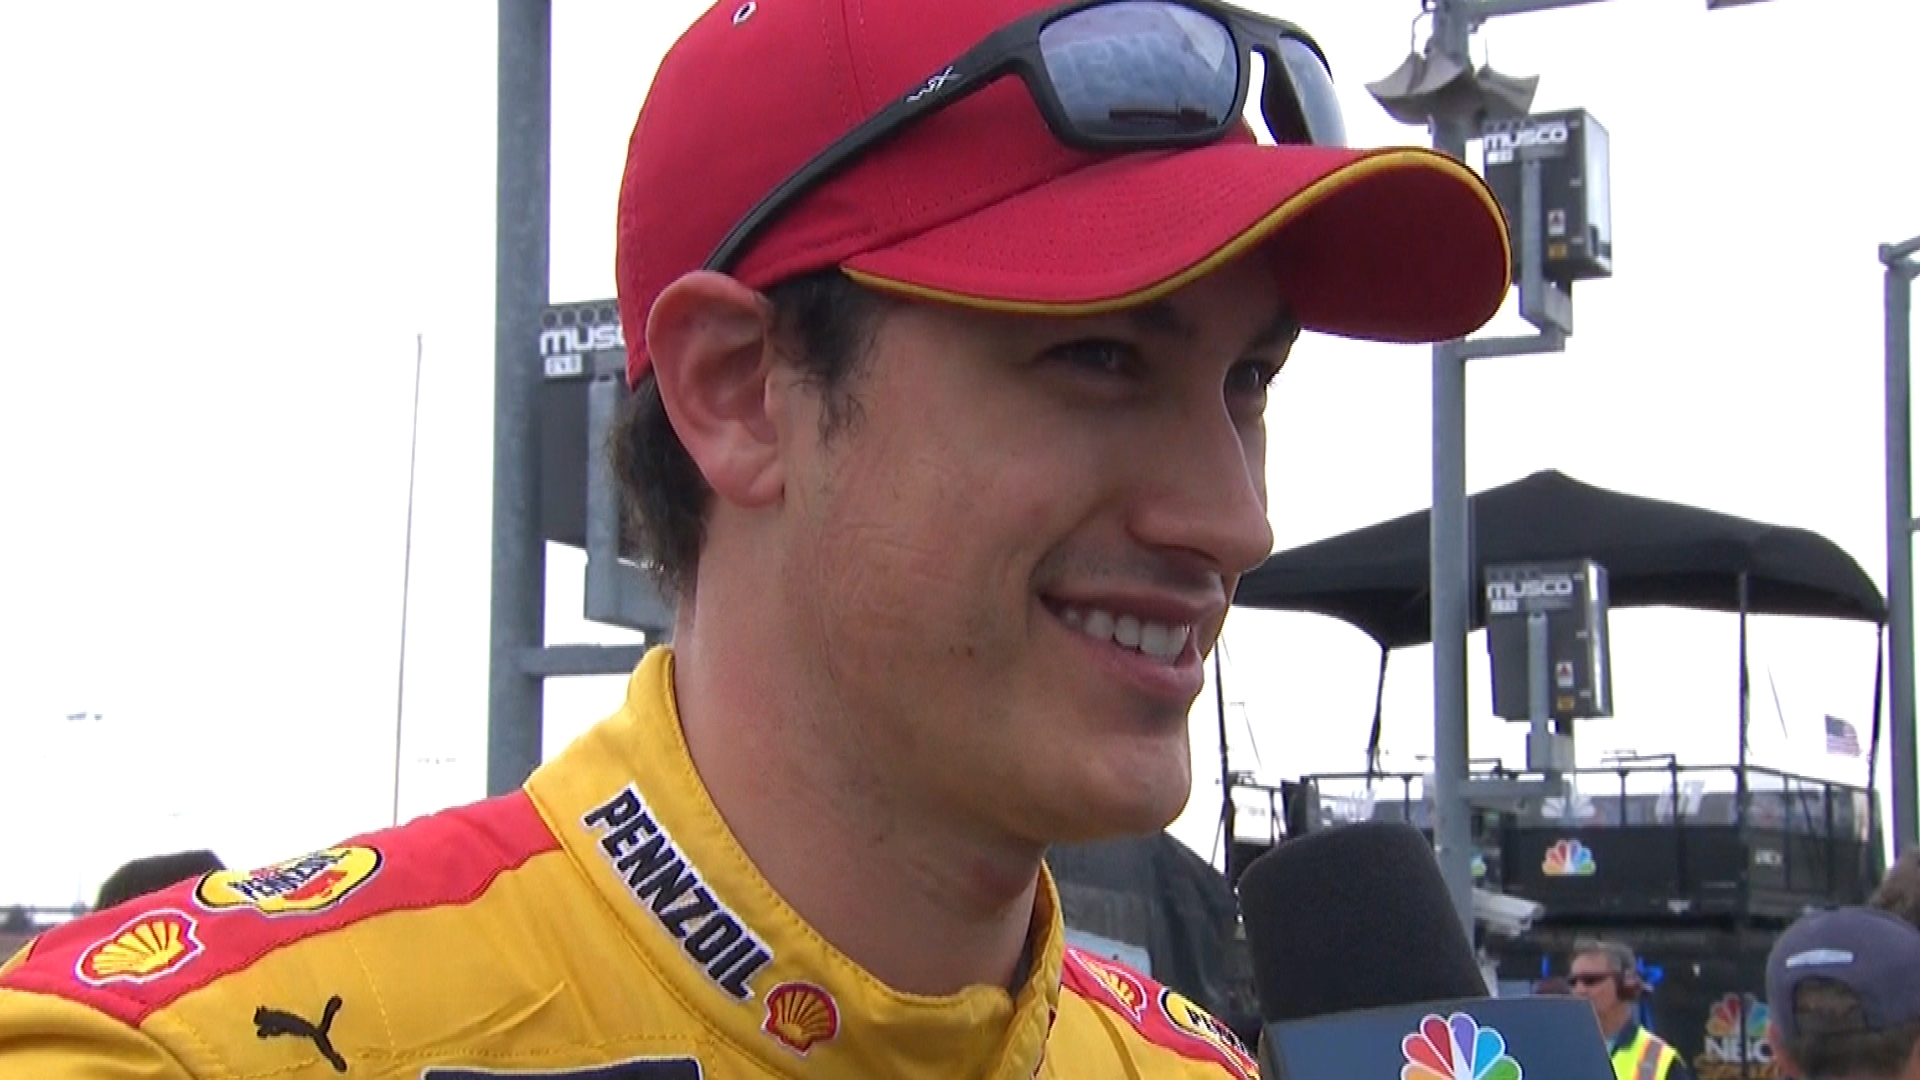 Joey Logano survives and advances to NASCAR Cup Series Playoffs Round of 8 – NBC Sports – Misc.